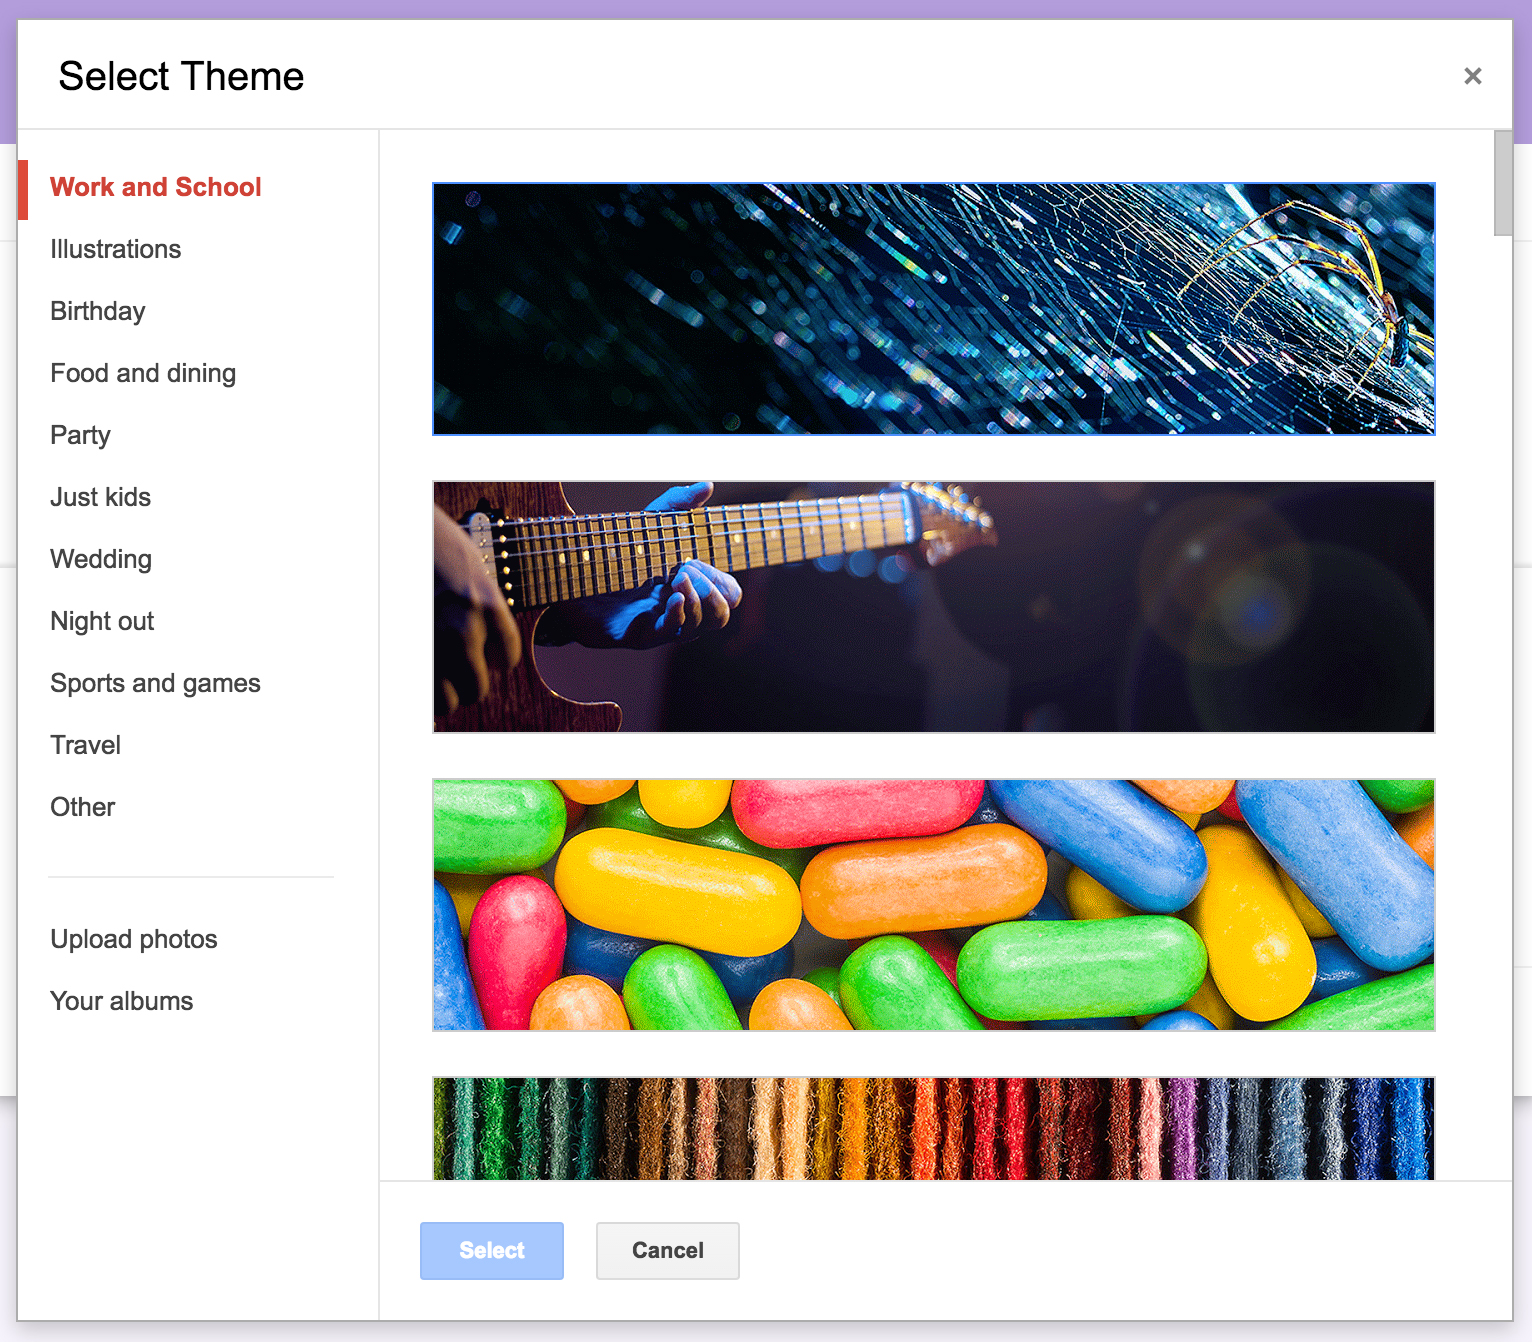 Select Themes and Images